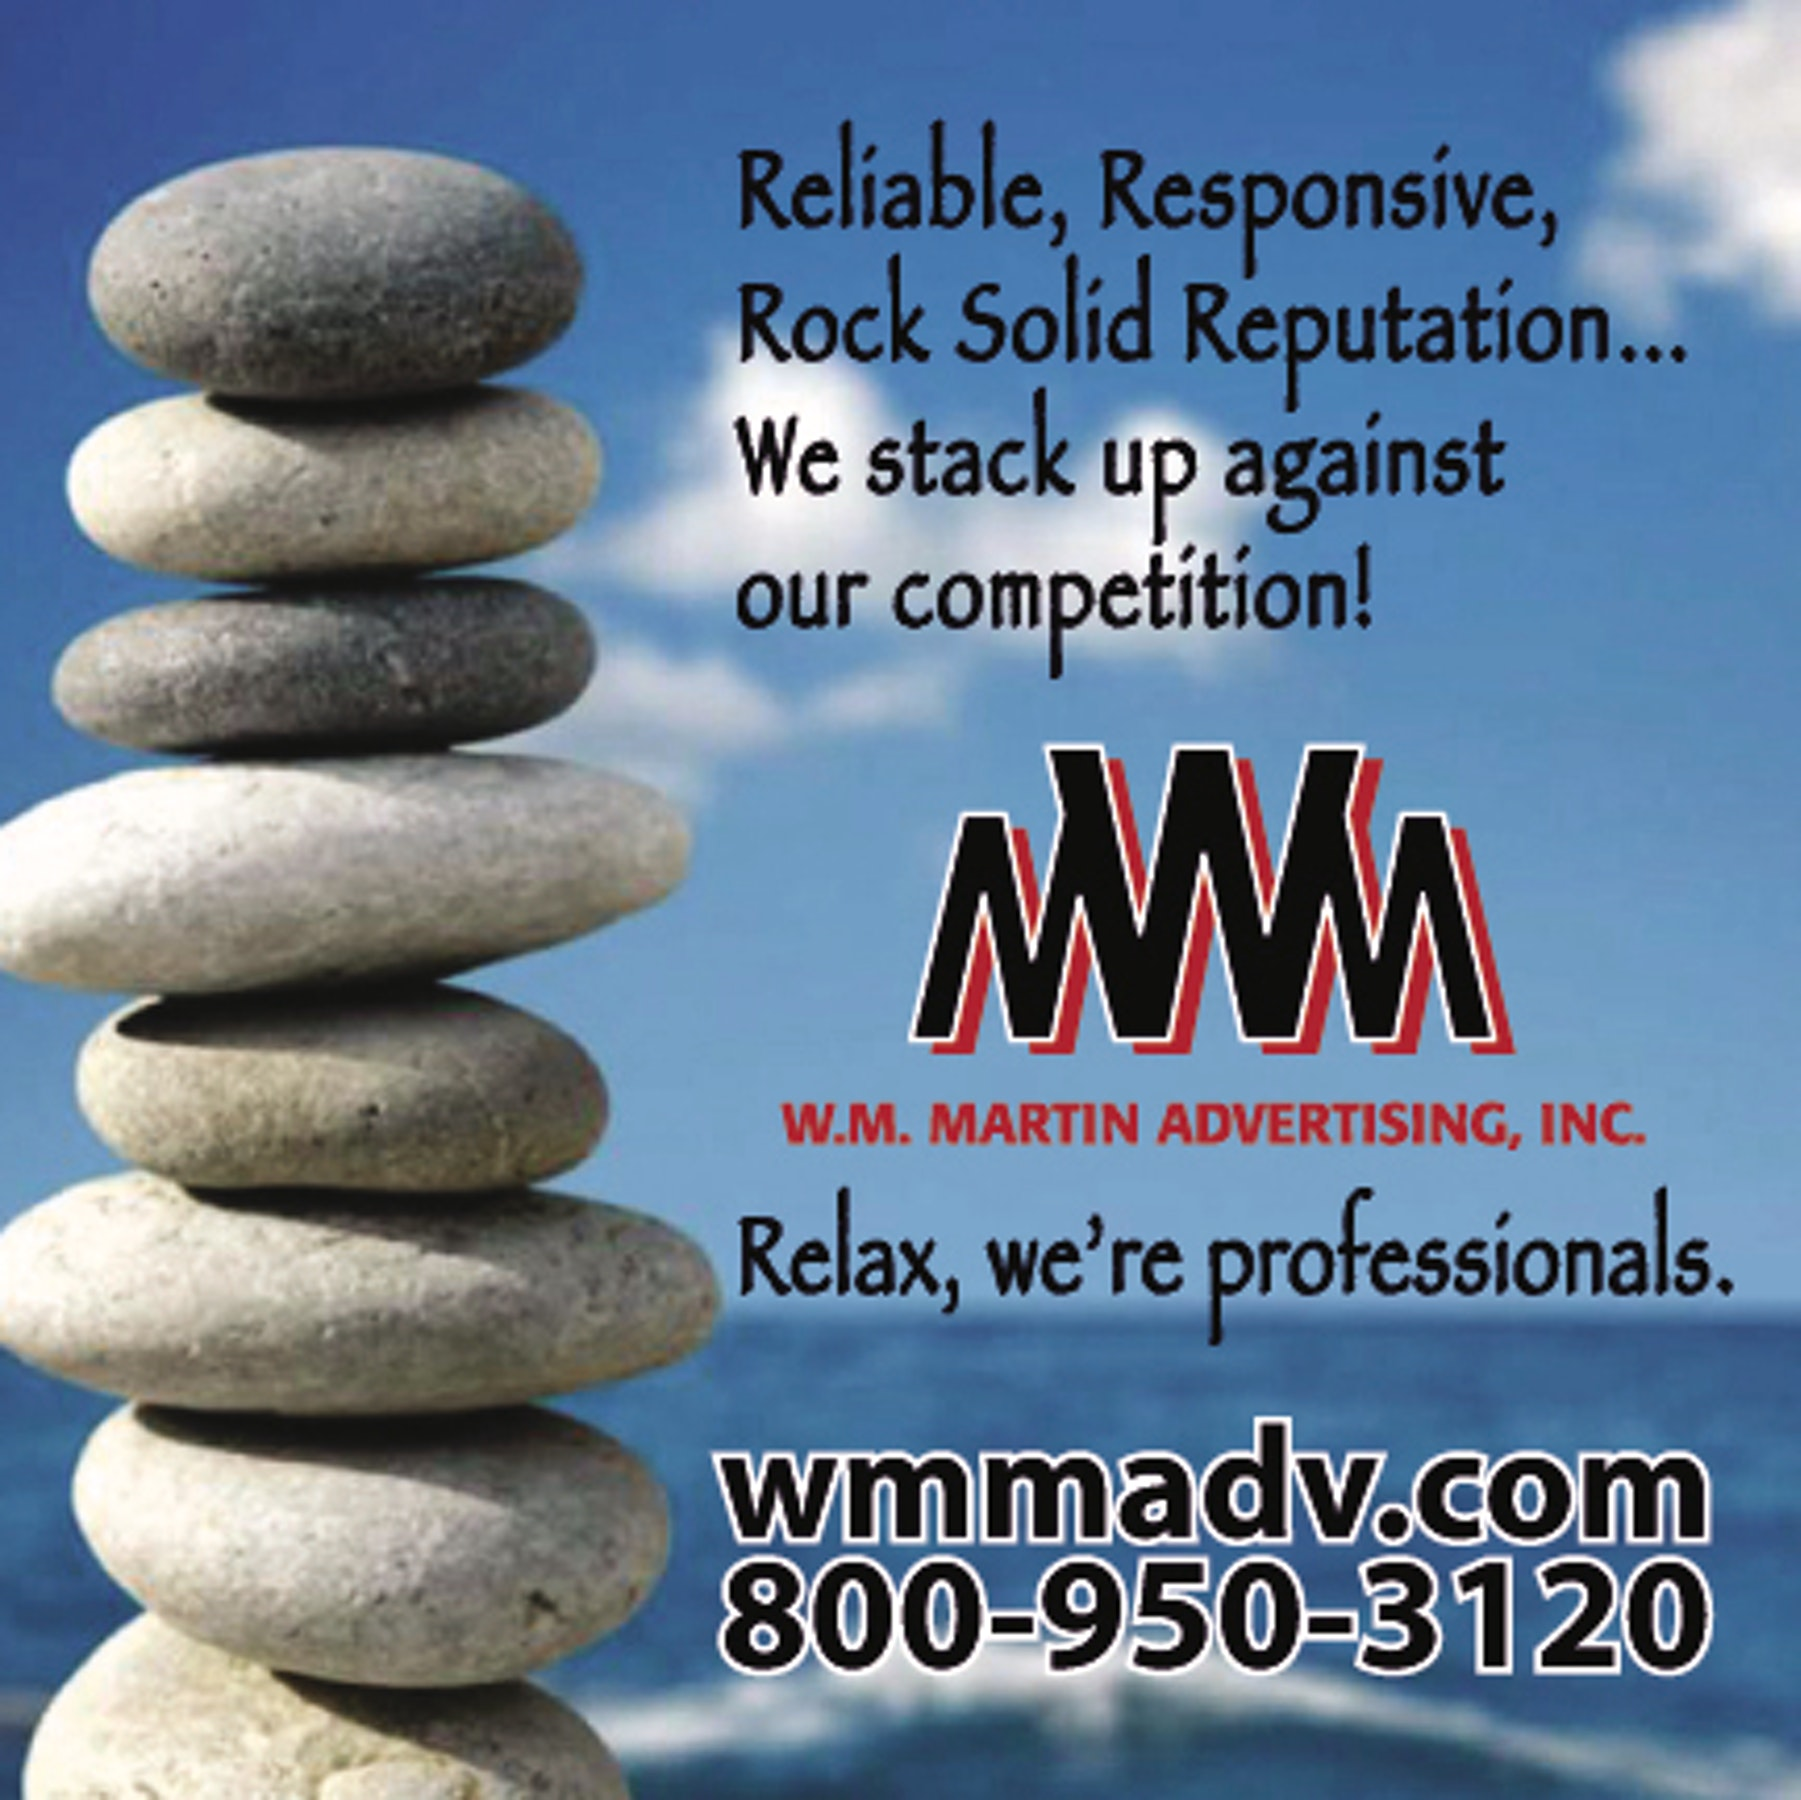 W.M. Martin Advertising, Inc. in Beyond Dallas